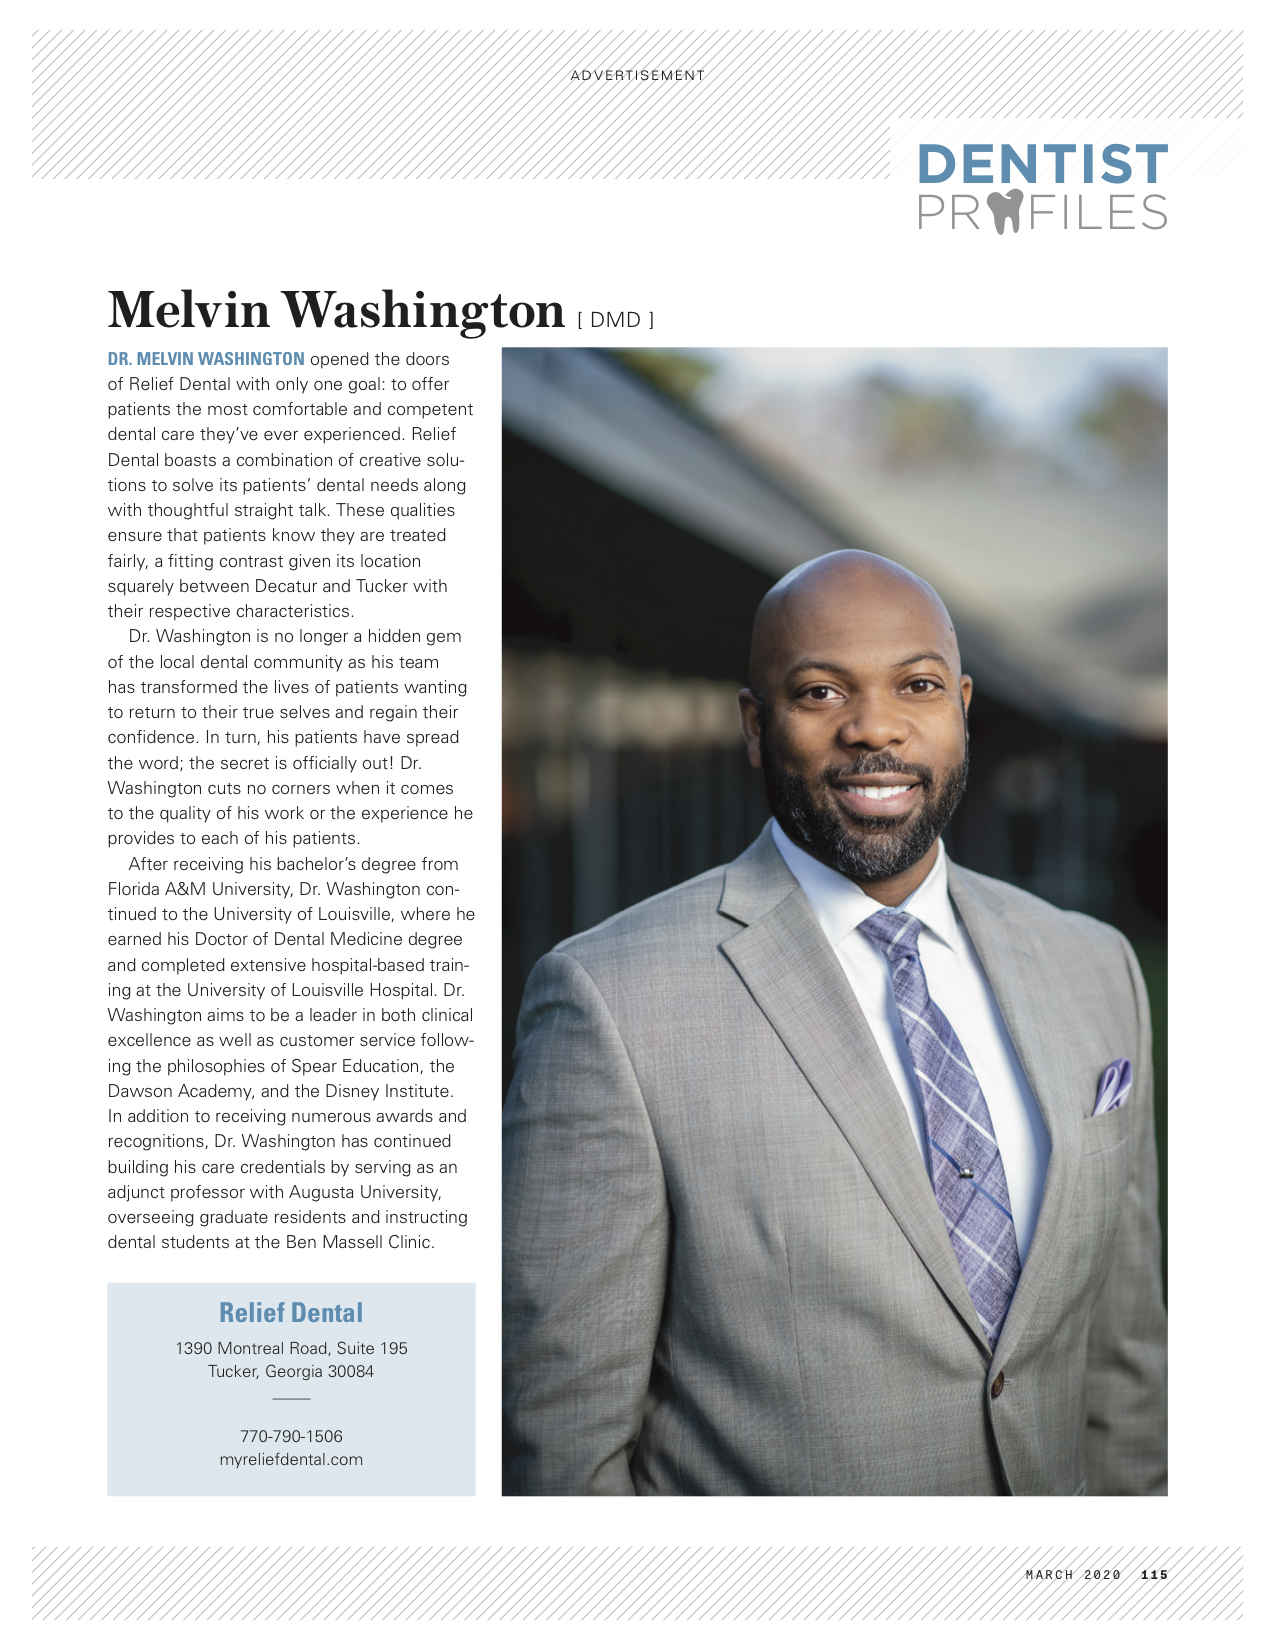 atlanta magazine article dr. melvin washinton tucker ga cosmetic dentist